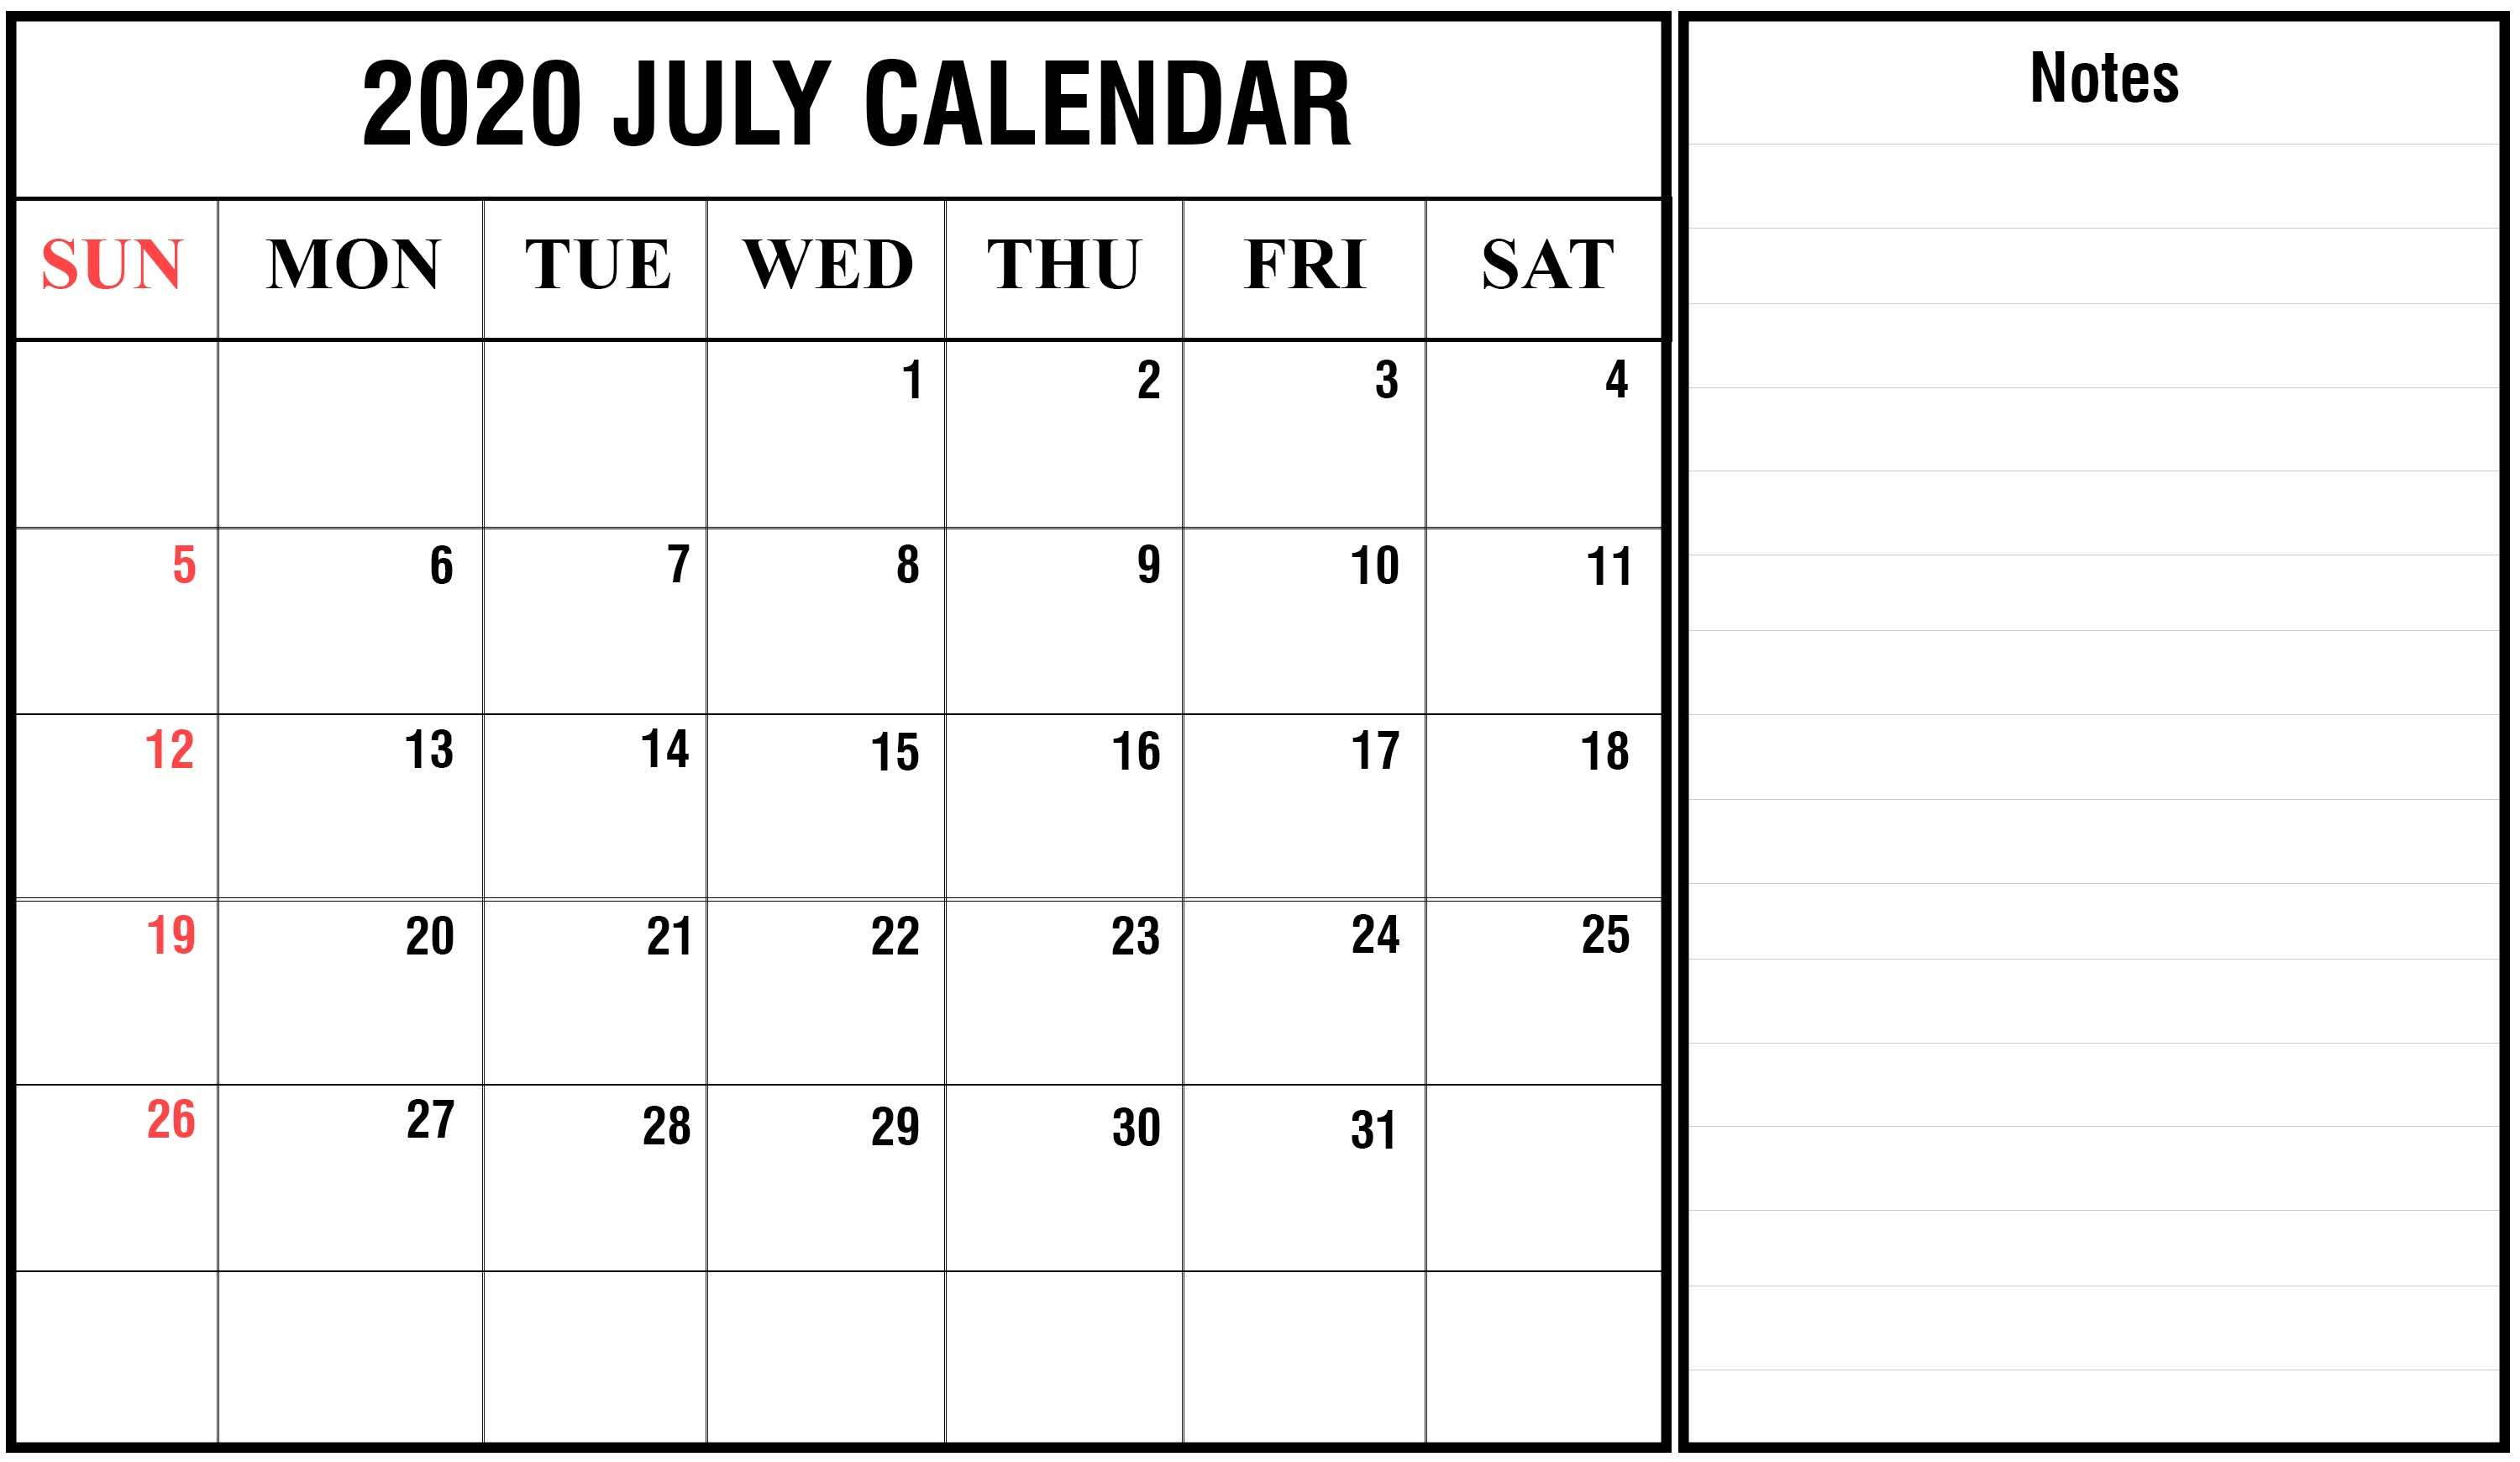 Editable July 2020 Calendar with notes